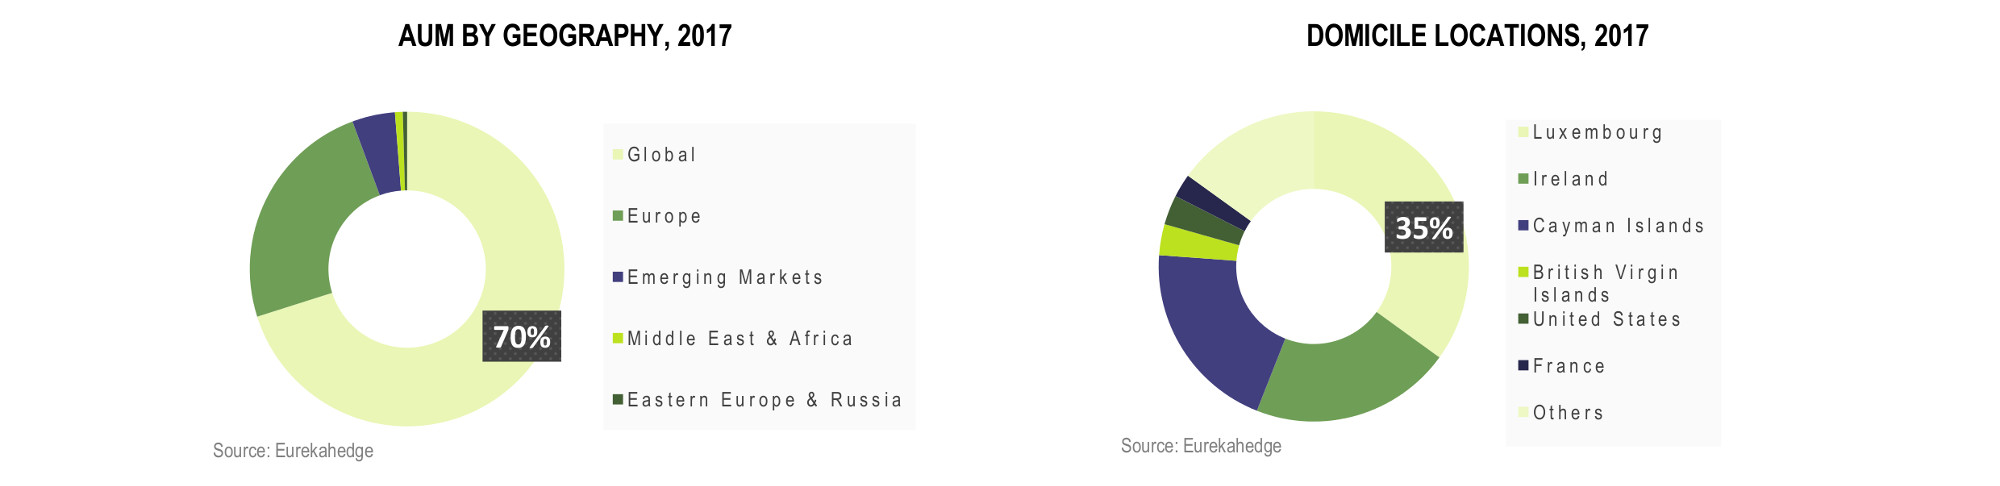 European Hedge Fund Infographic December 2017 - AUM by geography and domicile locations